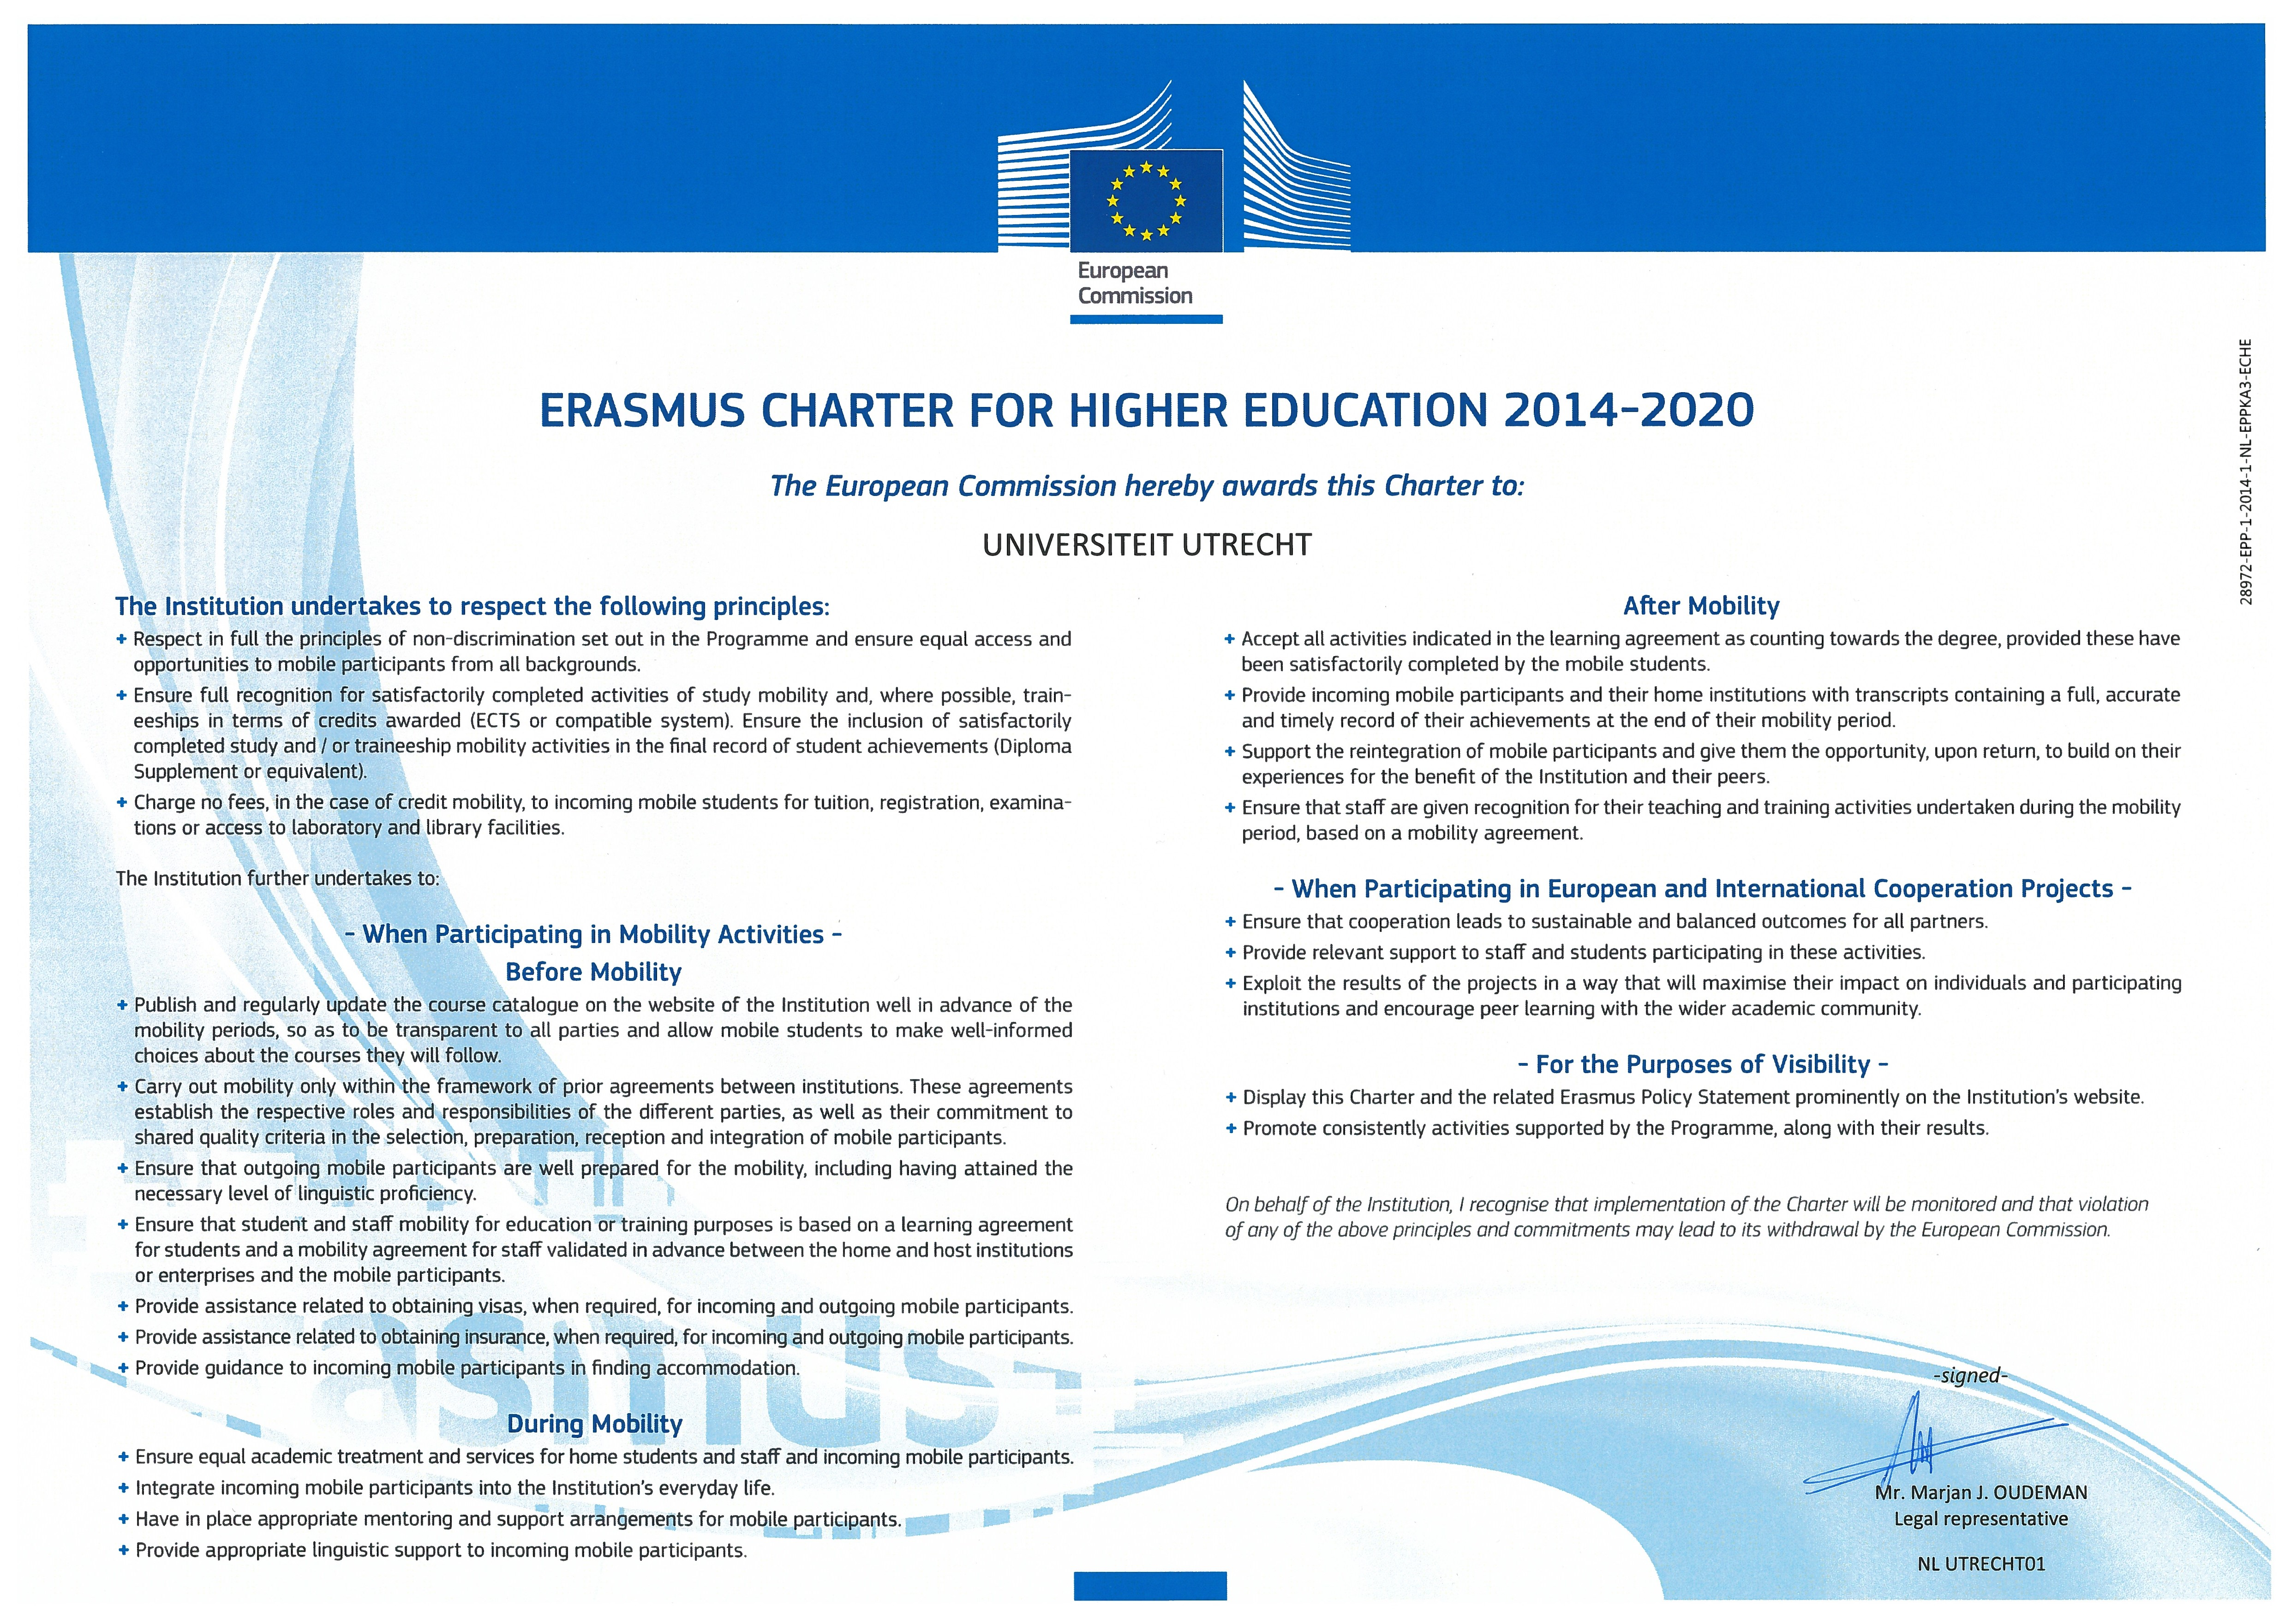 House design brief example - Utrecht University Participates In The Erasmus Programme And Holds An Erasmus Charter For Higher Education